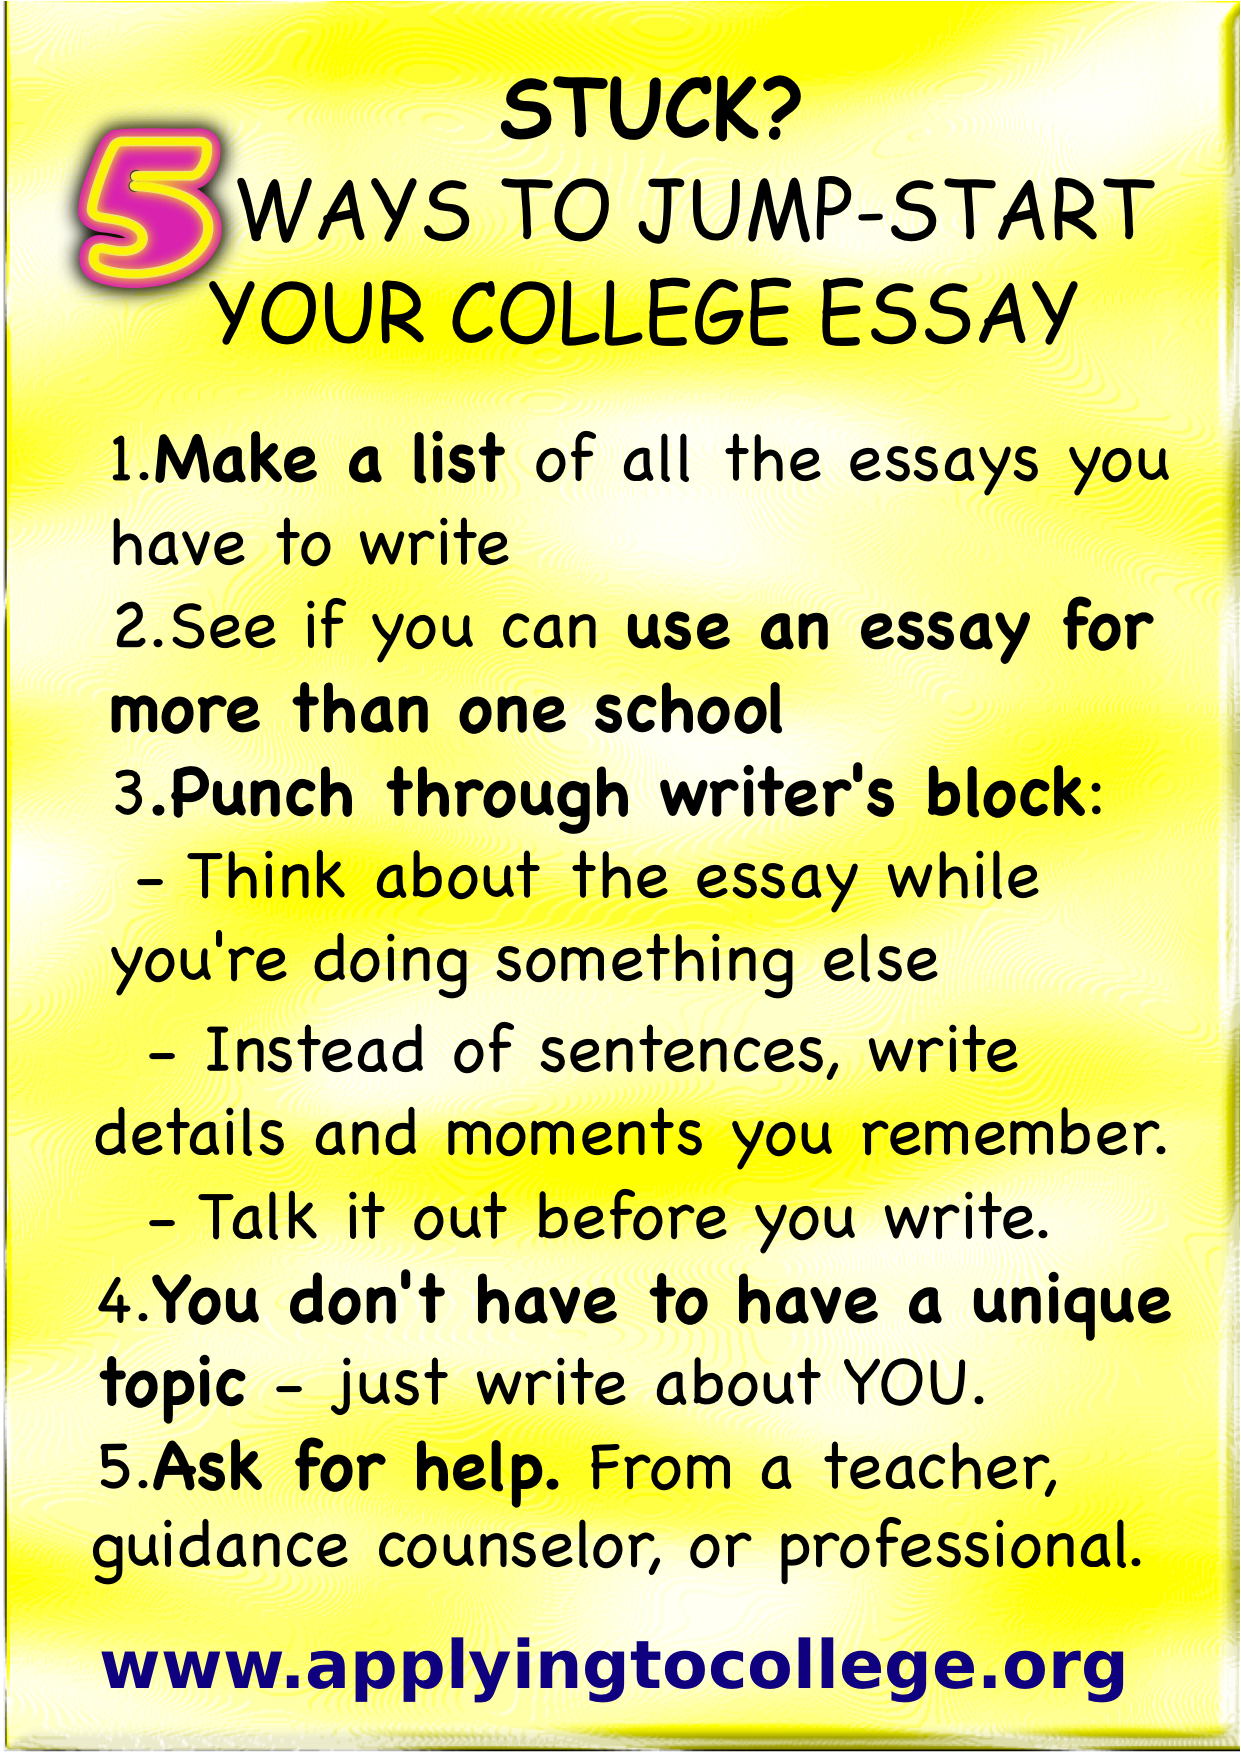 can the common app essay be more than 500 words The common application, which is accepted by more than 750  the common app essay prompts and where can i find  have a 650-word limit for essays.